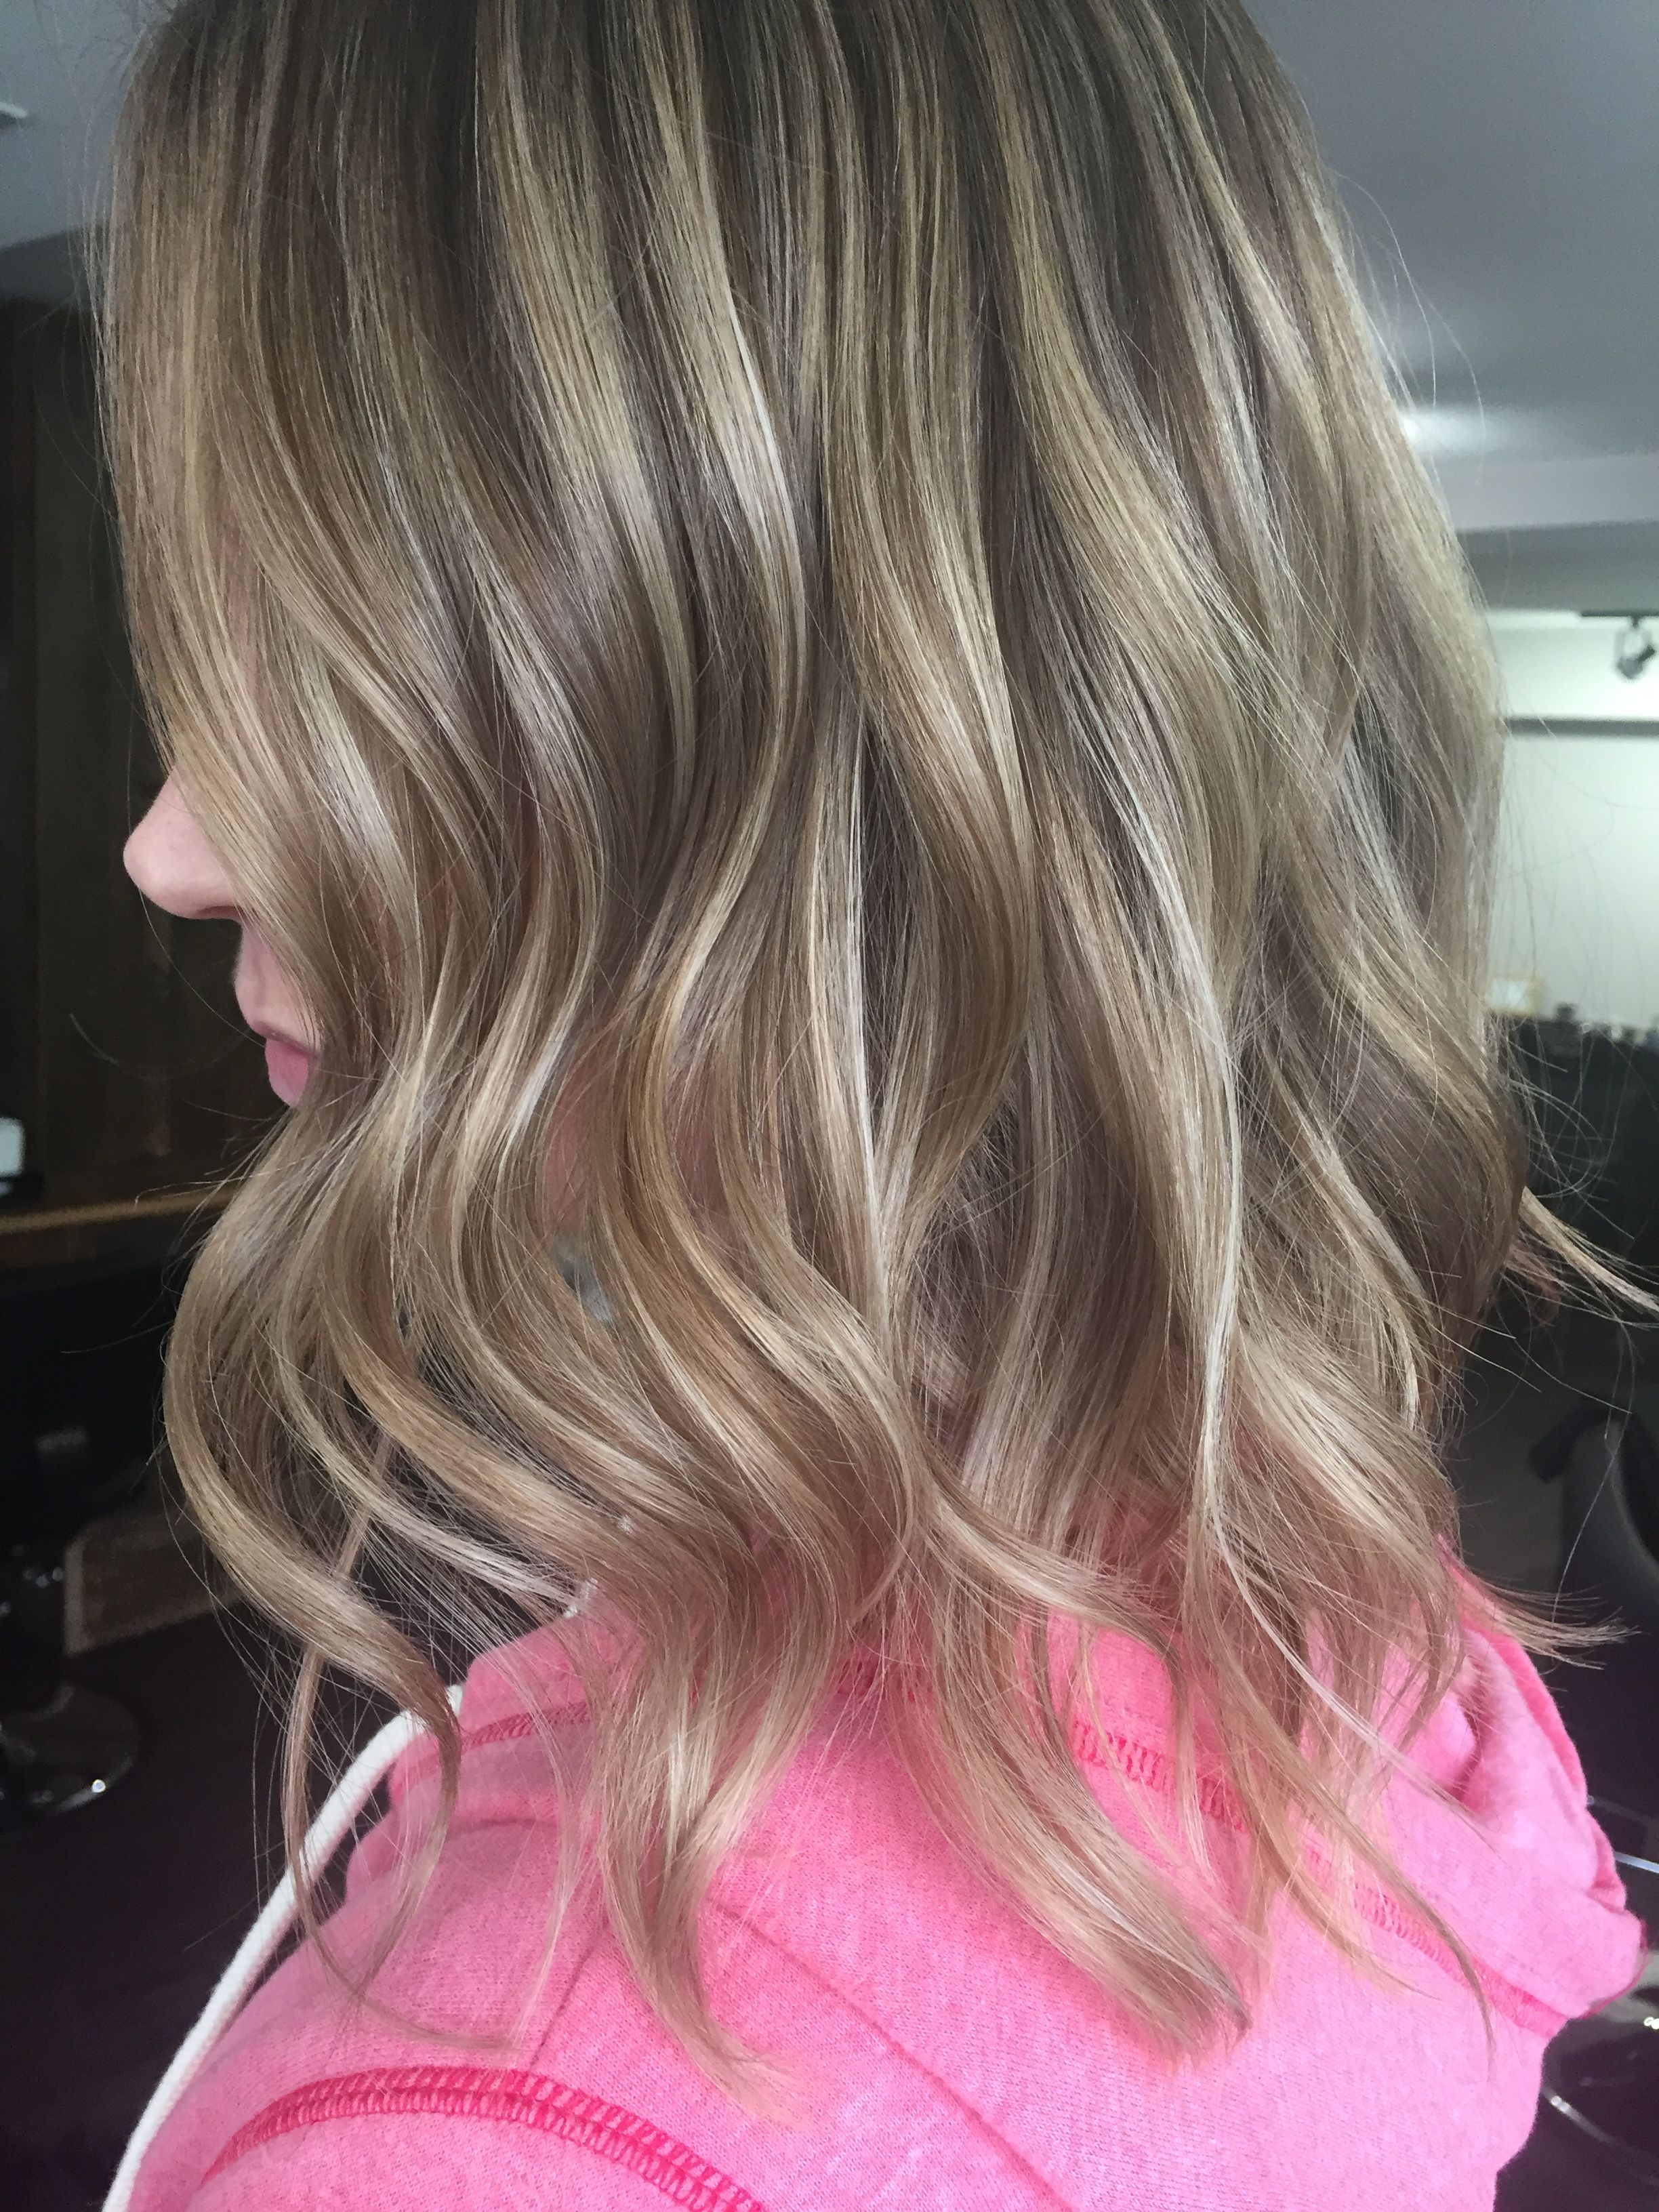 Bronde Sandy Sand Slate Ash Cool Hair Medium Dark Light Blonde Inside Widely Used Long Dark Hairstyles With Blonde Contour Balayage (View 5 of 20)